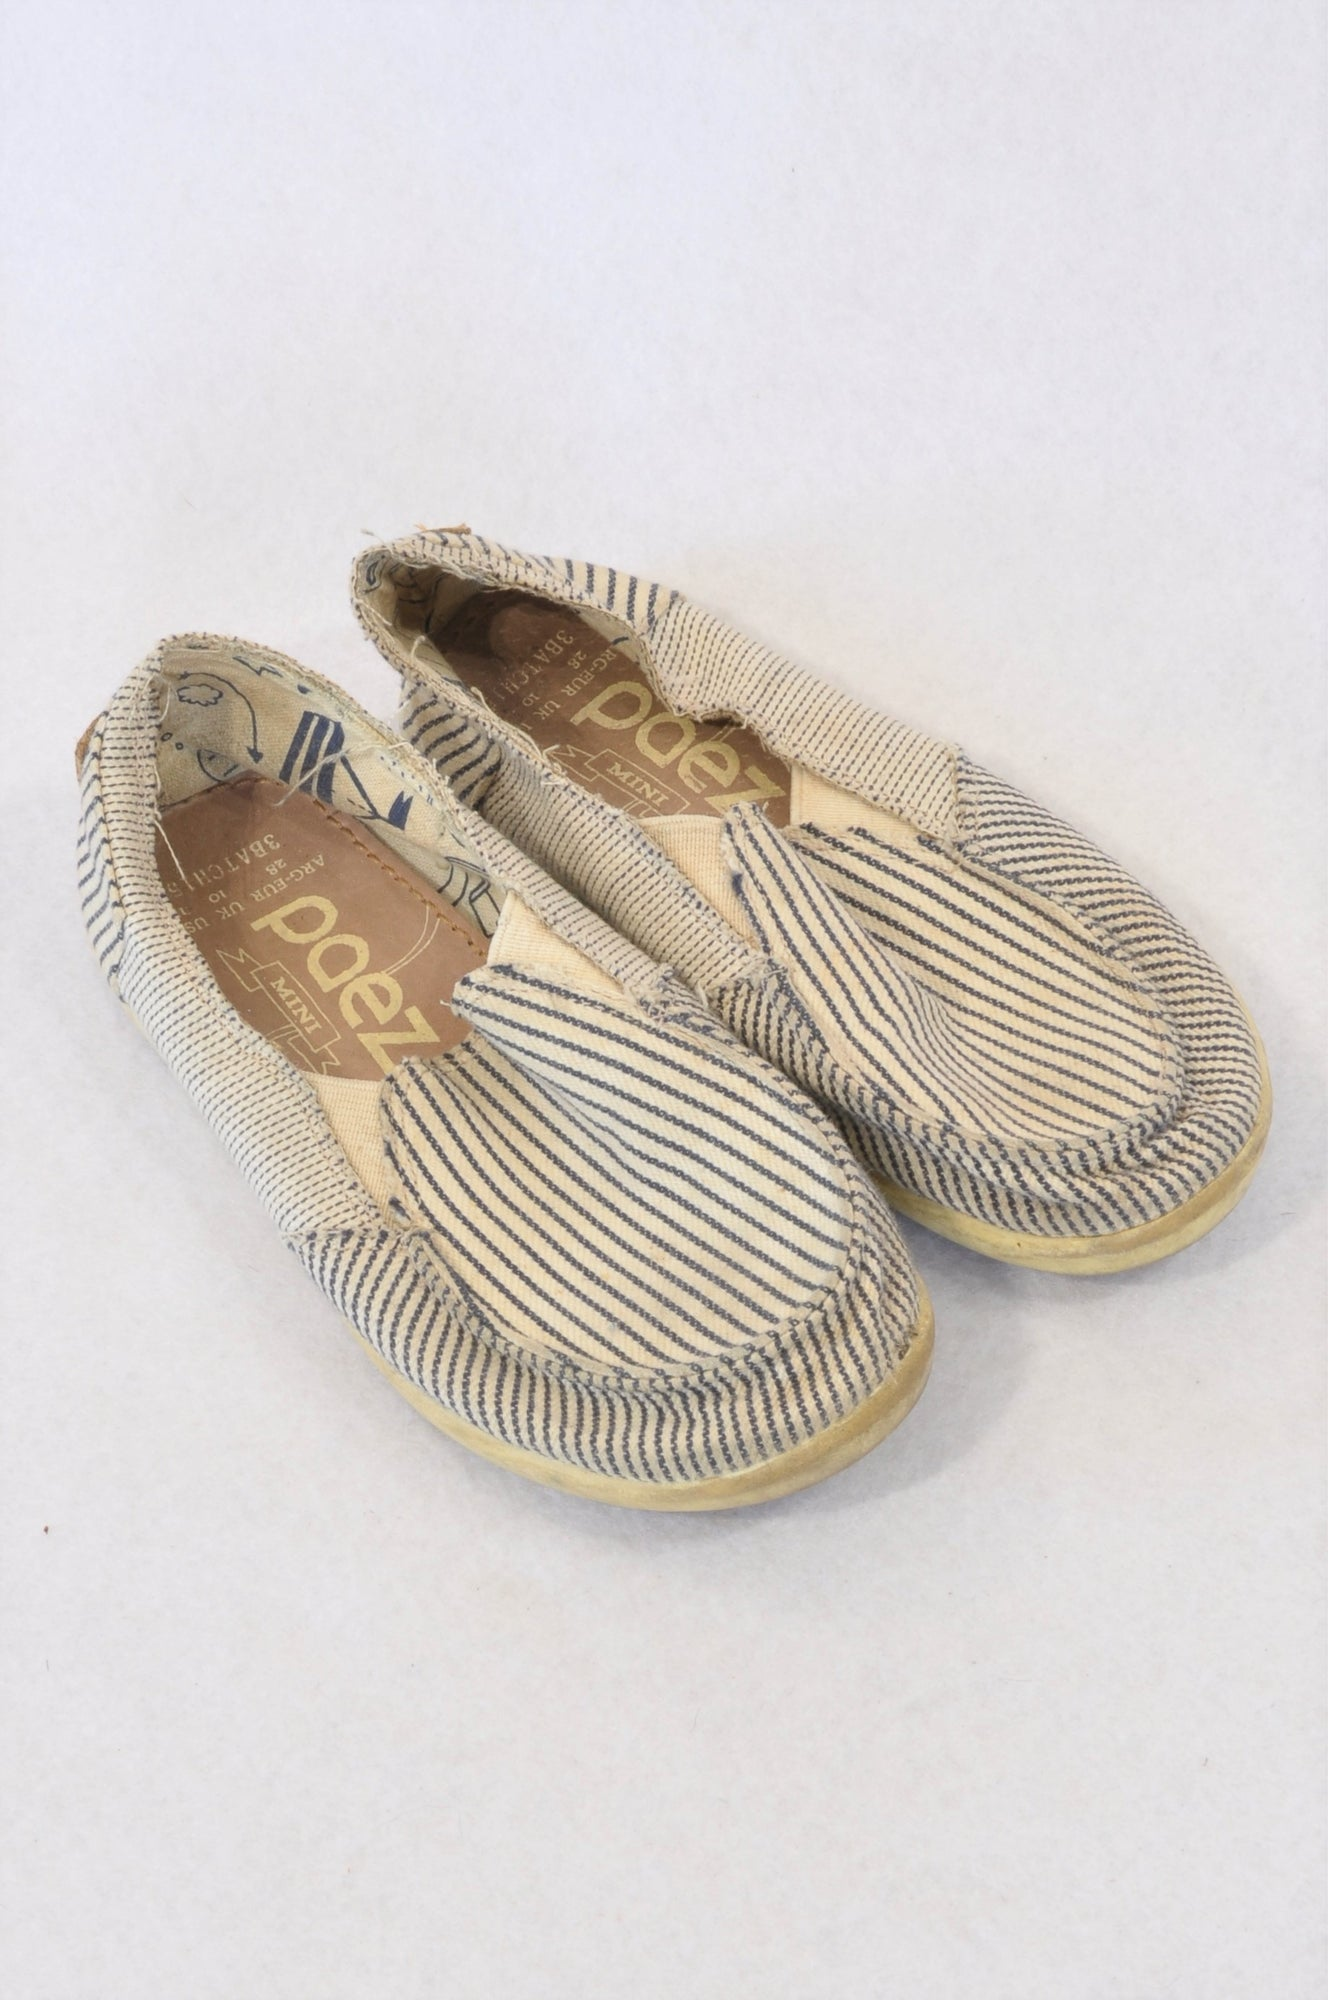 Paez Size 10 Cream & Navy Stripe Espadrille Shoes Unisex 4-5 years